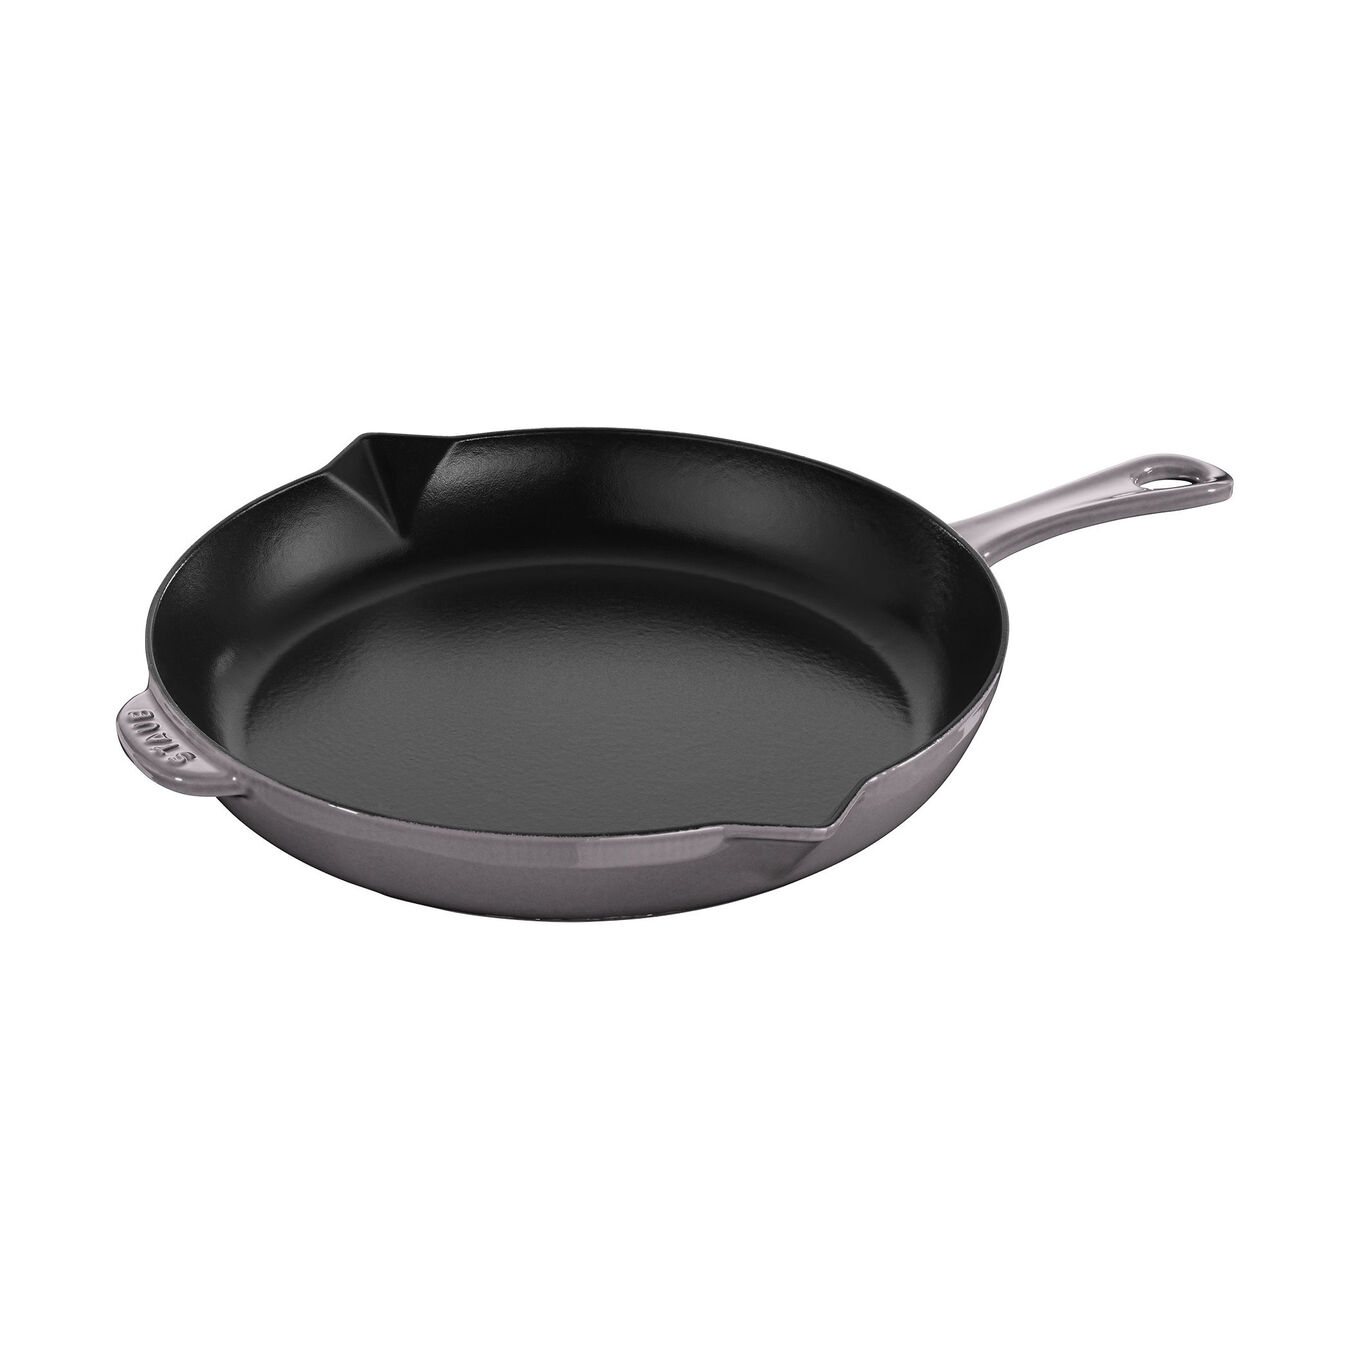 12-inch, Frying pan, graphite grey,,large 1